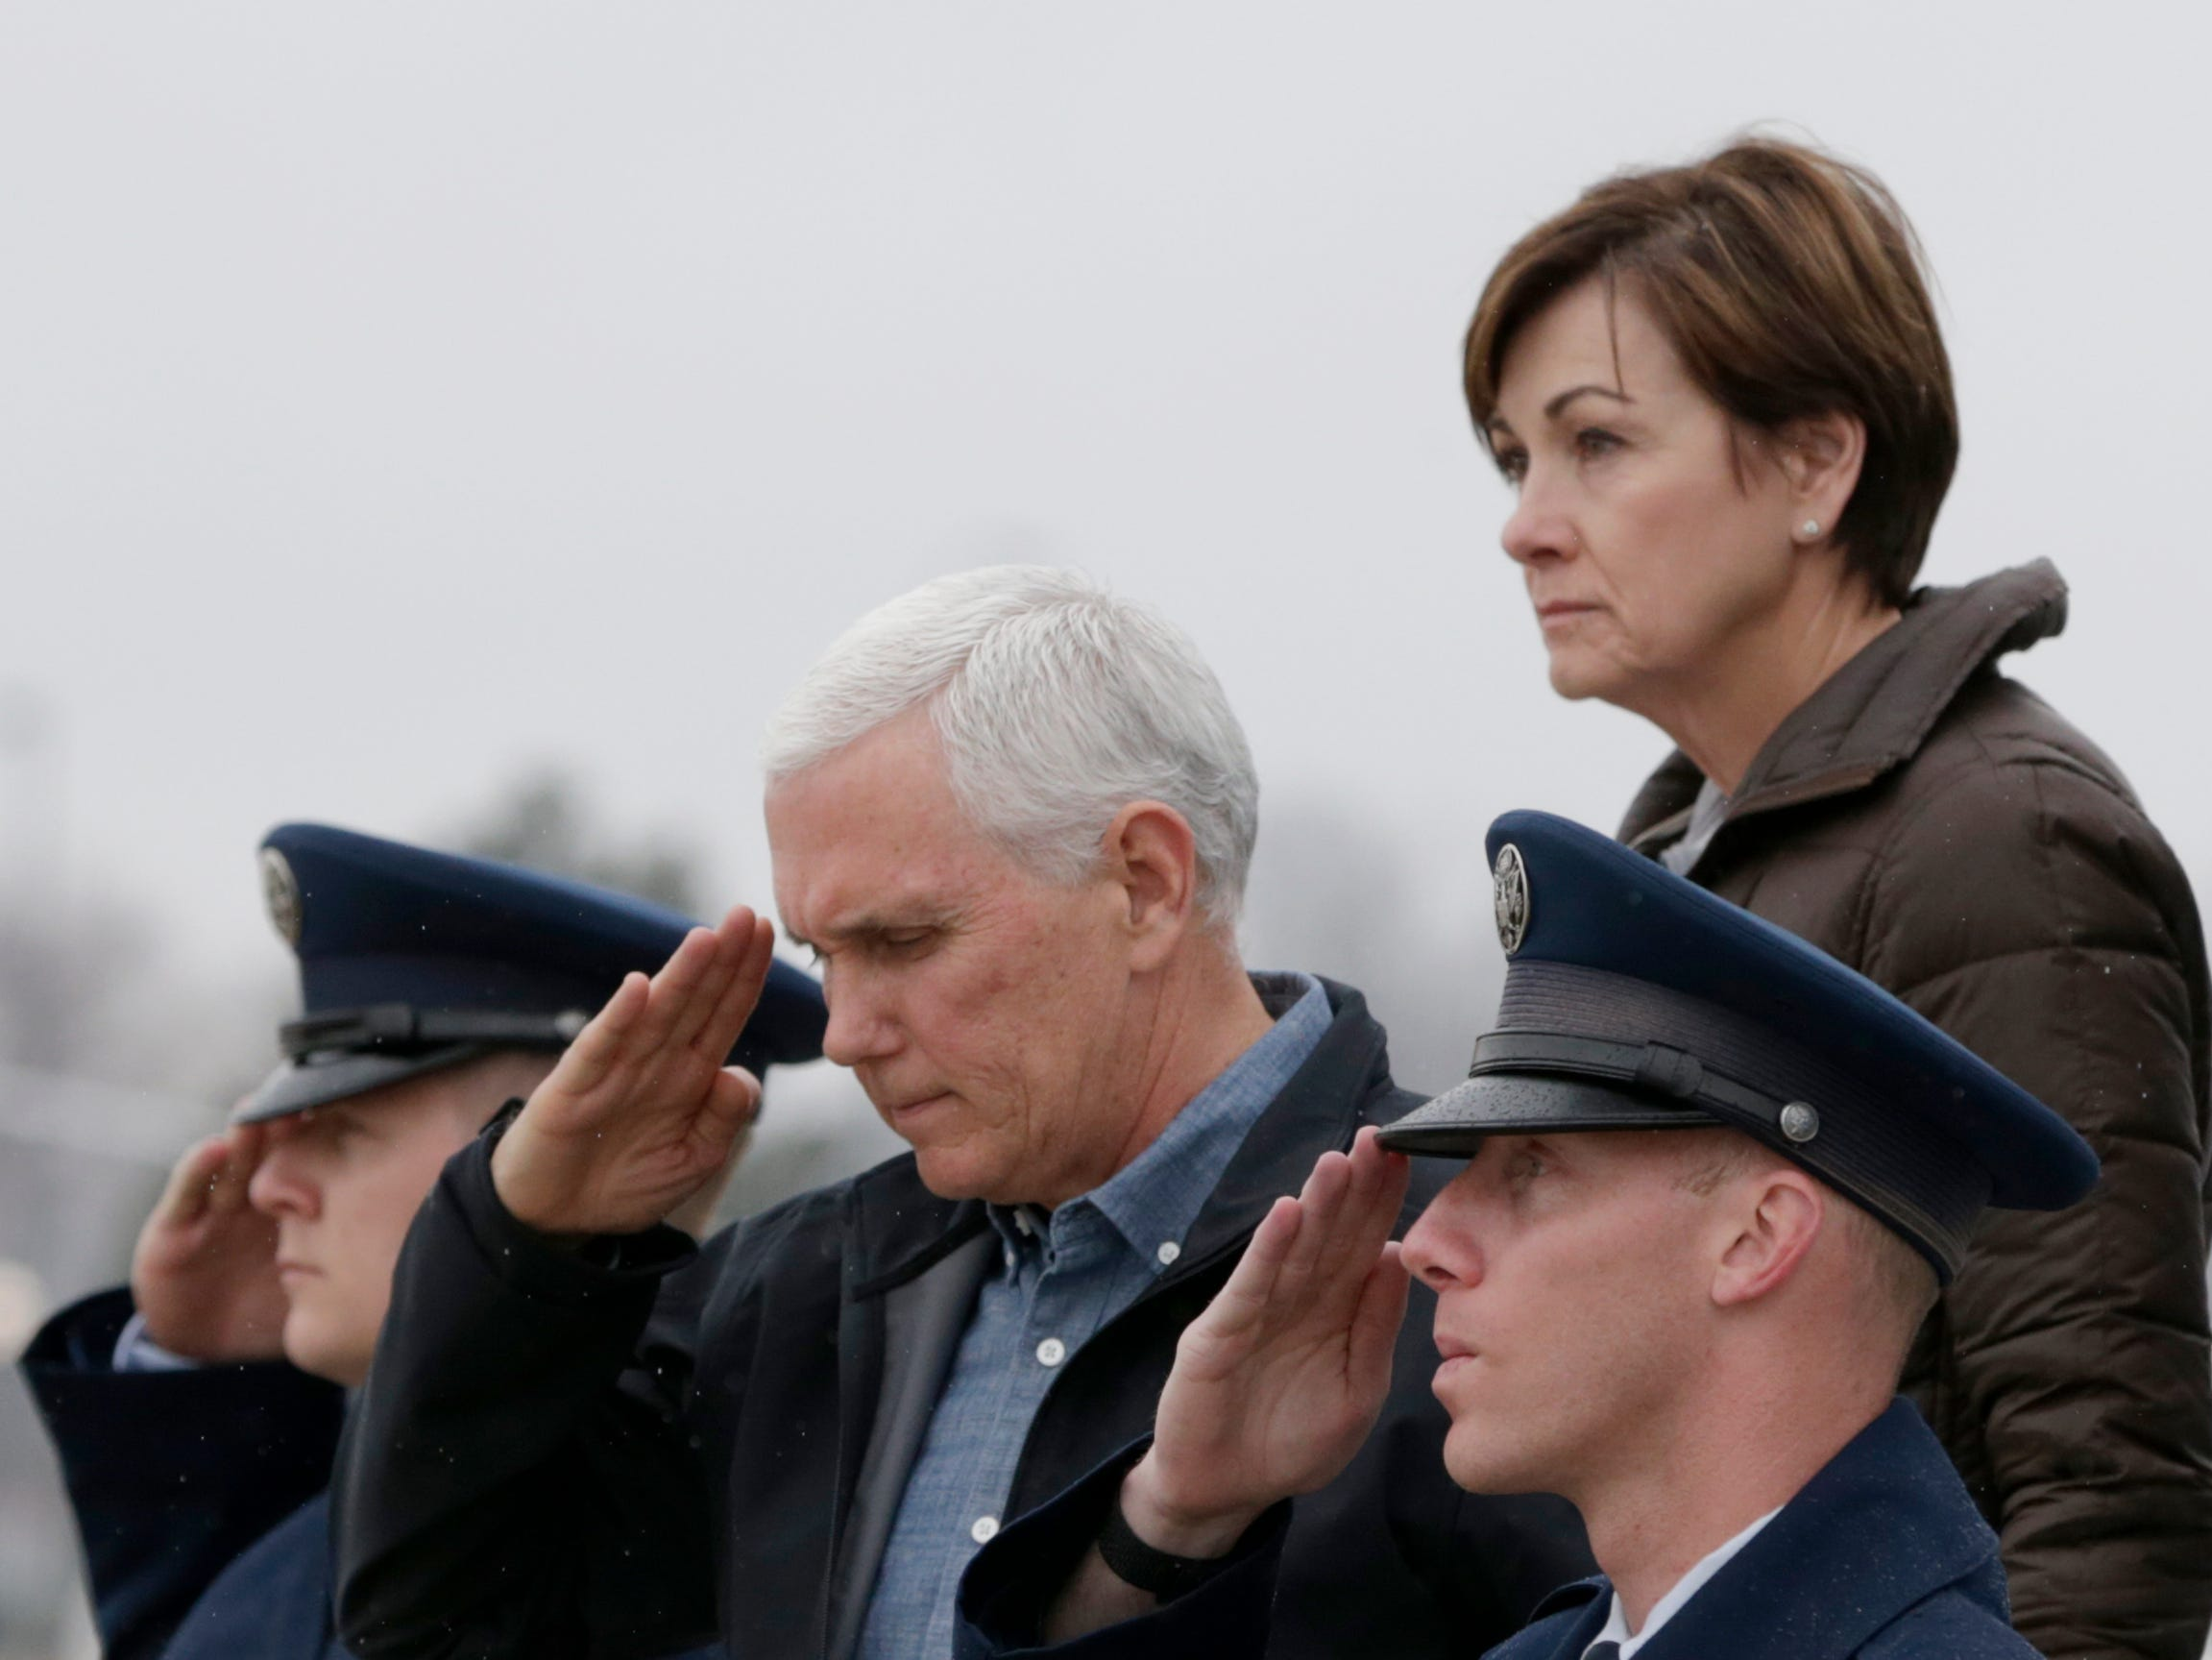 Vice President Mike Pence salutes, as he is followed by Iowa Gov. Kim Reynolds upon his arrival in Omaha, Neb., Tuesday, March 19, 2019 to view the recent floods and offer support for it's victims.